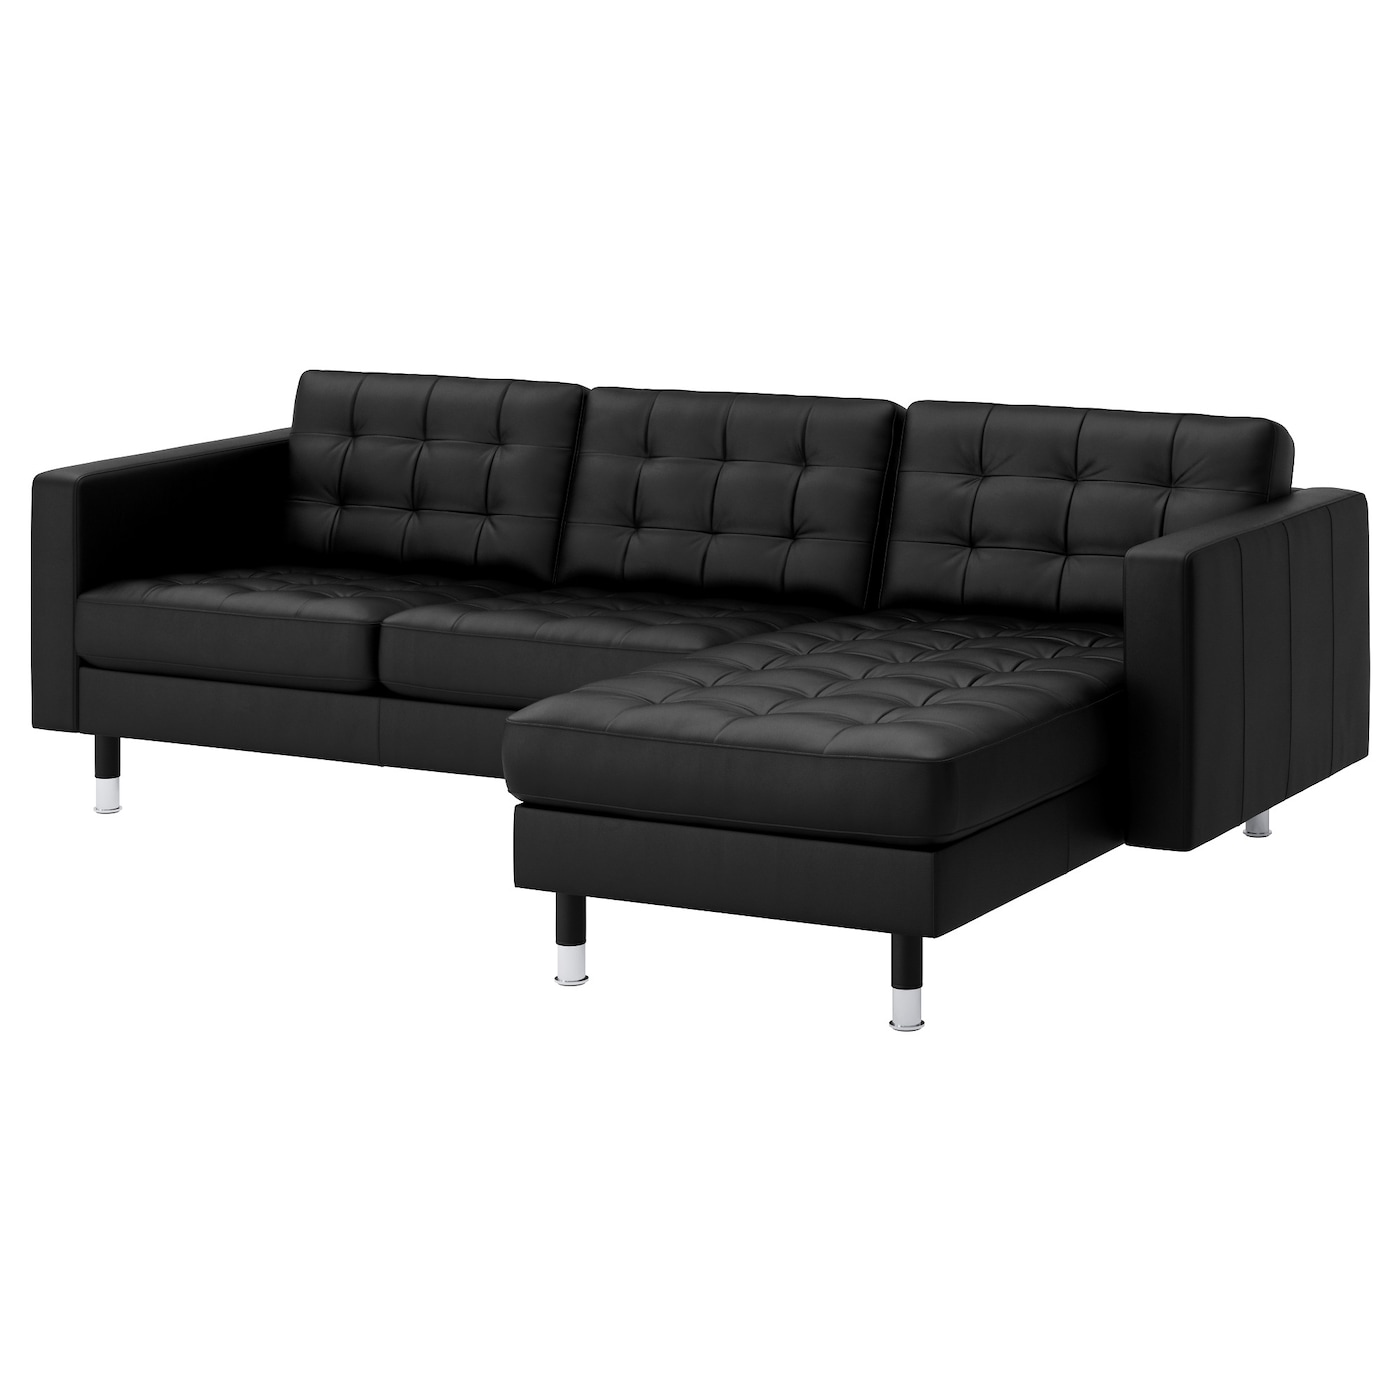 landskrona 3 seat sofa with chaise longue grann bomstad. Black Bedroom Furniture Sets. Home Design Ideas